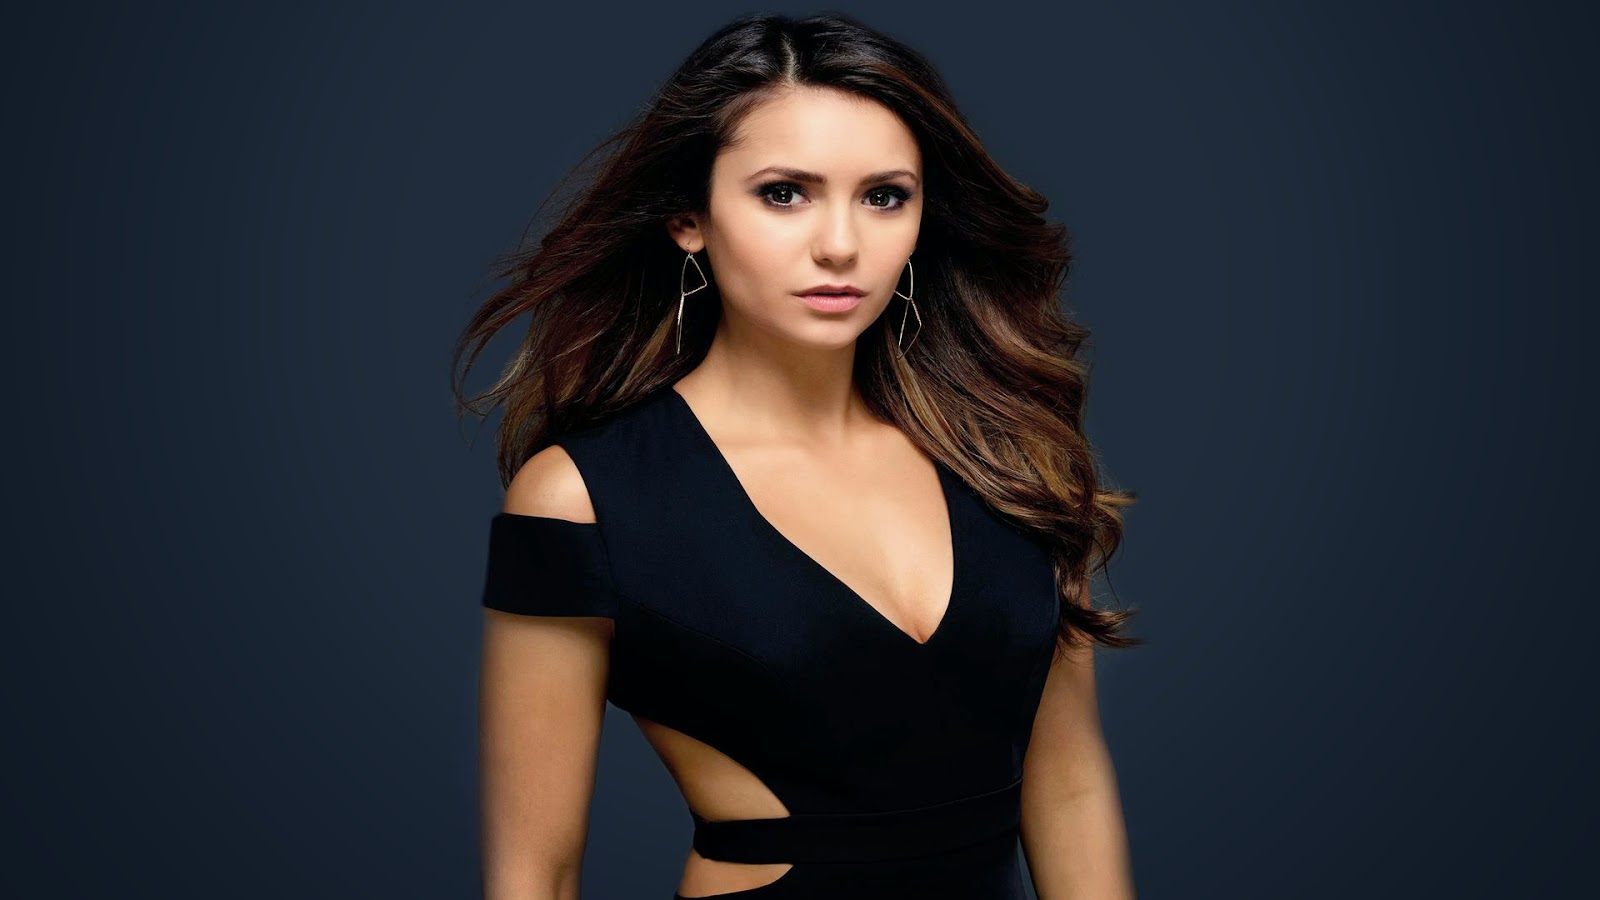 nina dobrev full hd - photo #11